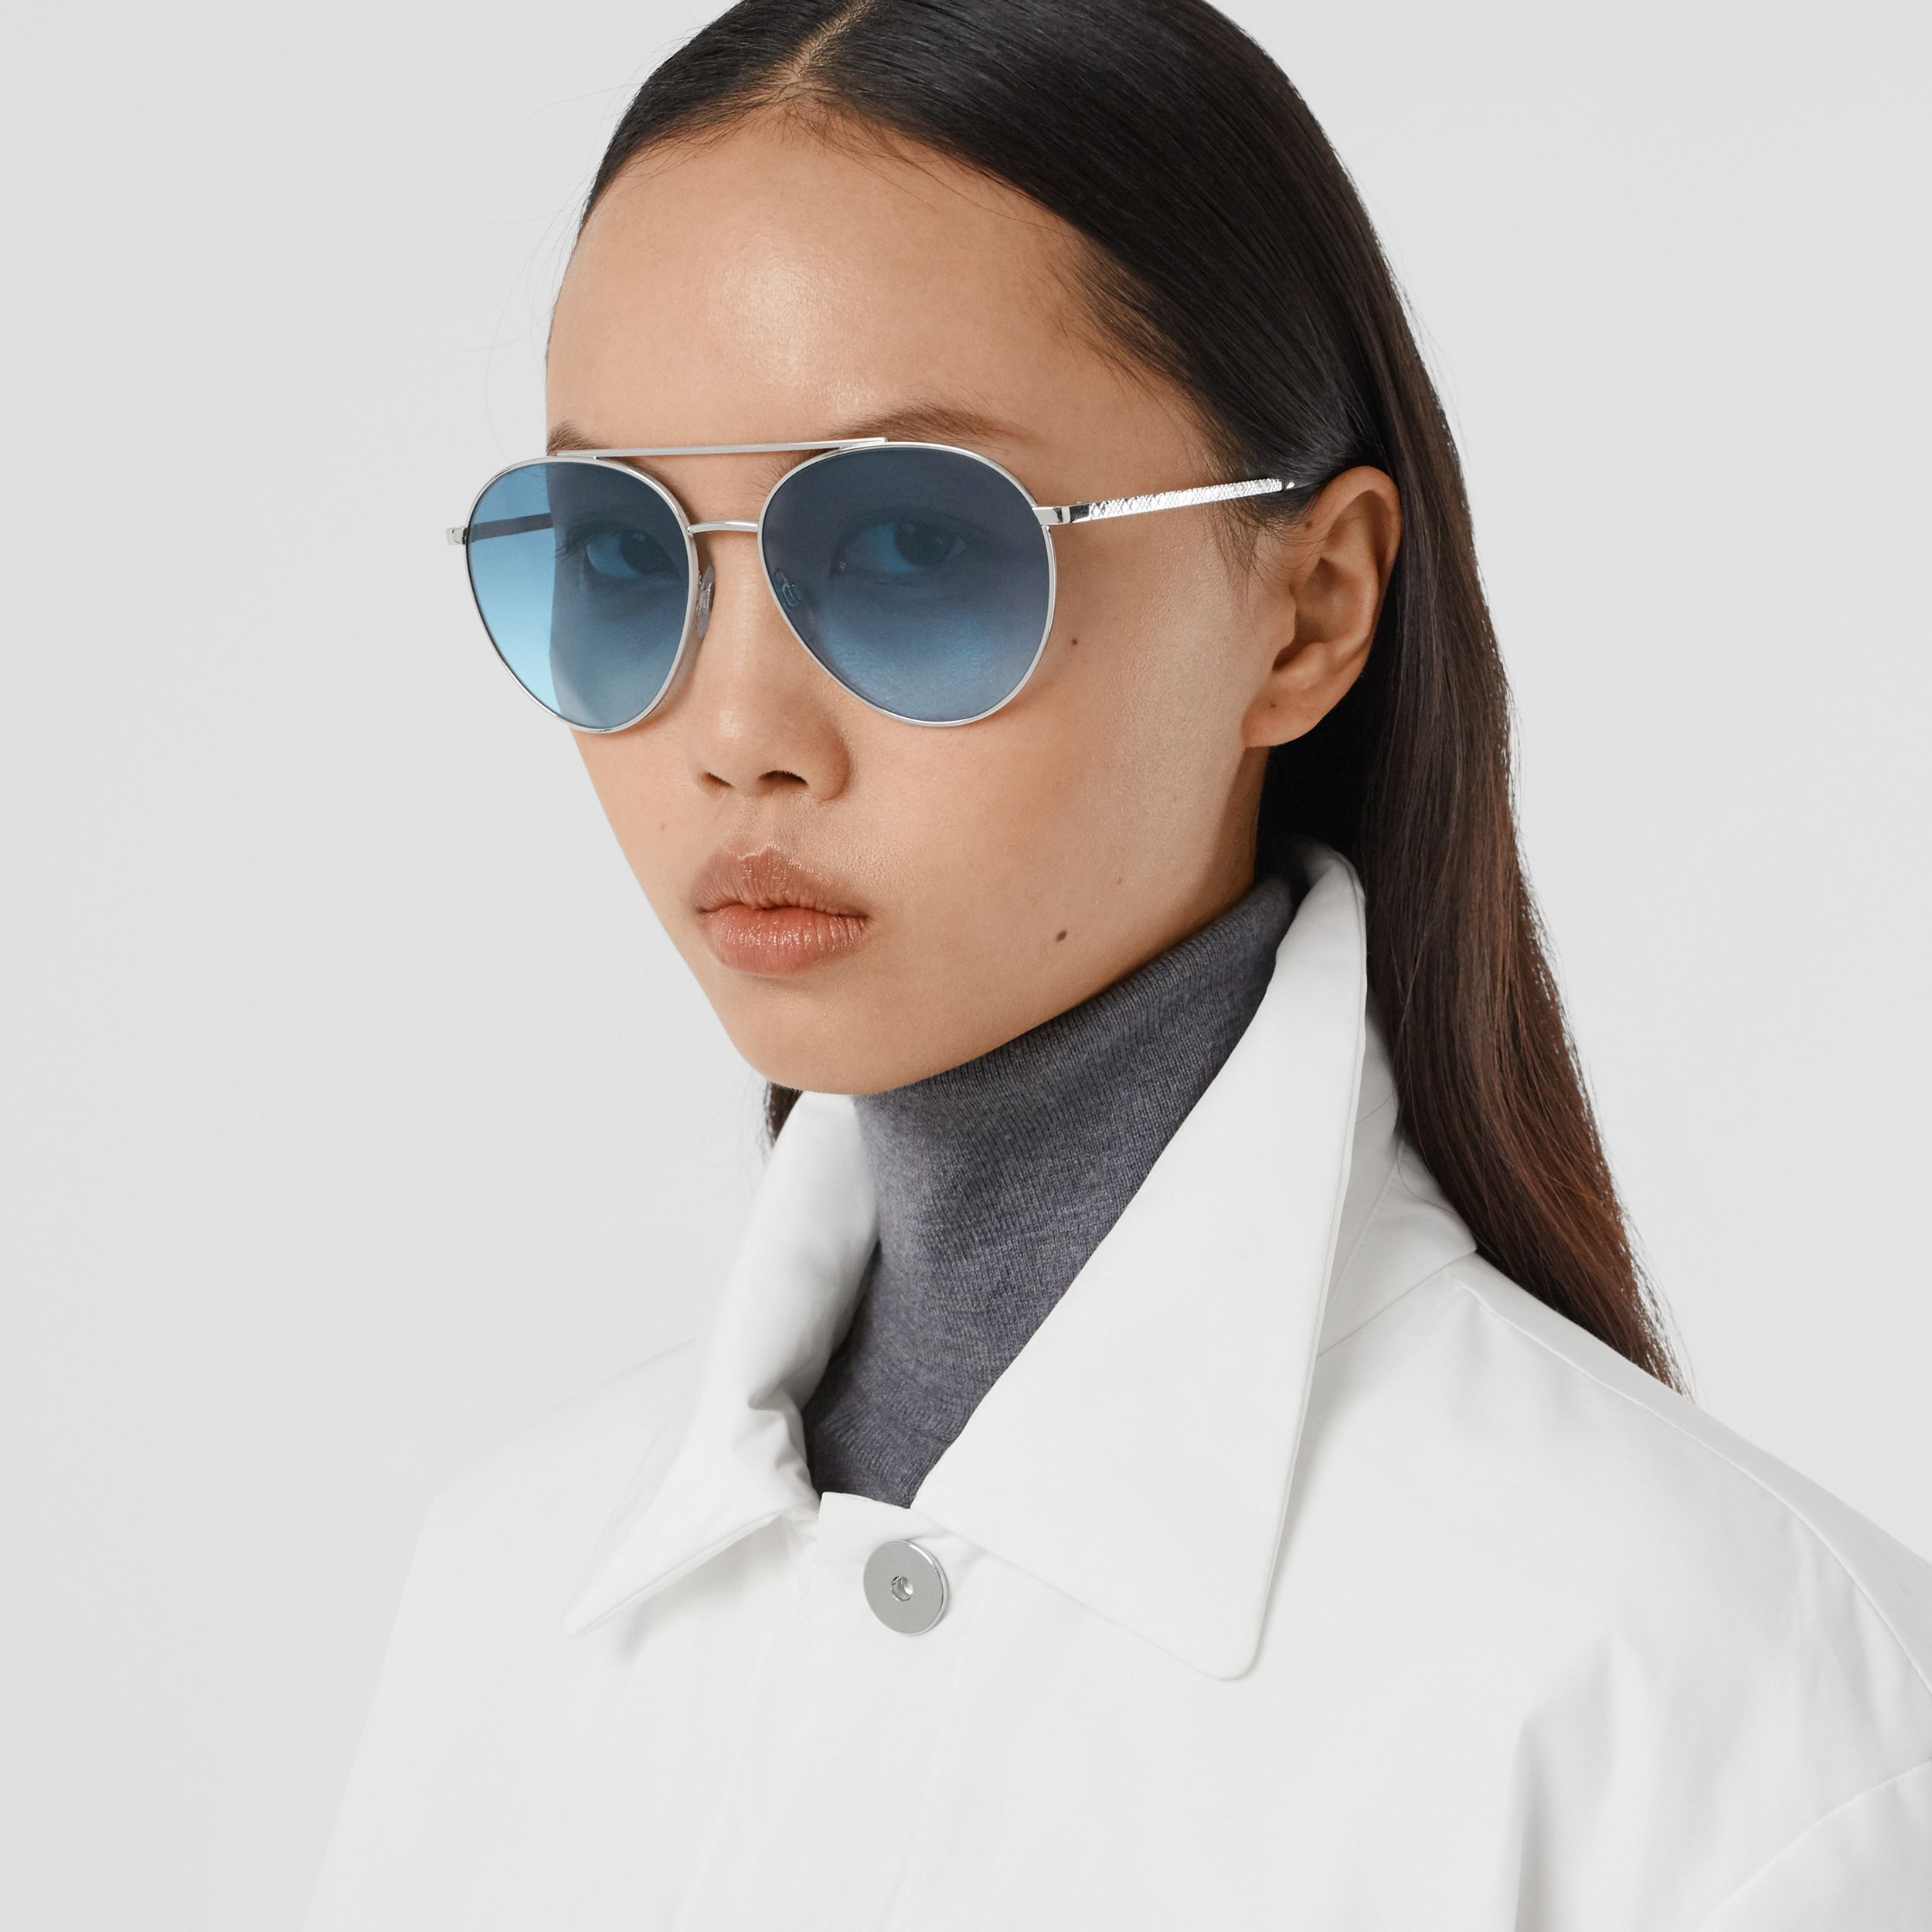 Pilot Sunglasses in Pale Blue - Women | Burberry United States - 3